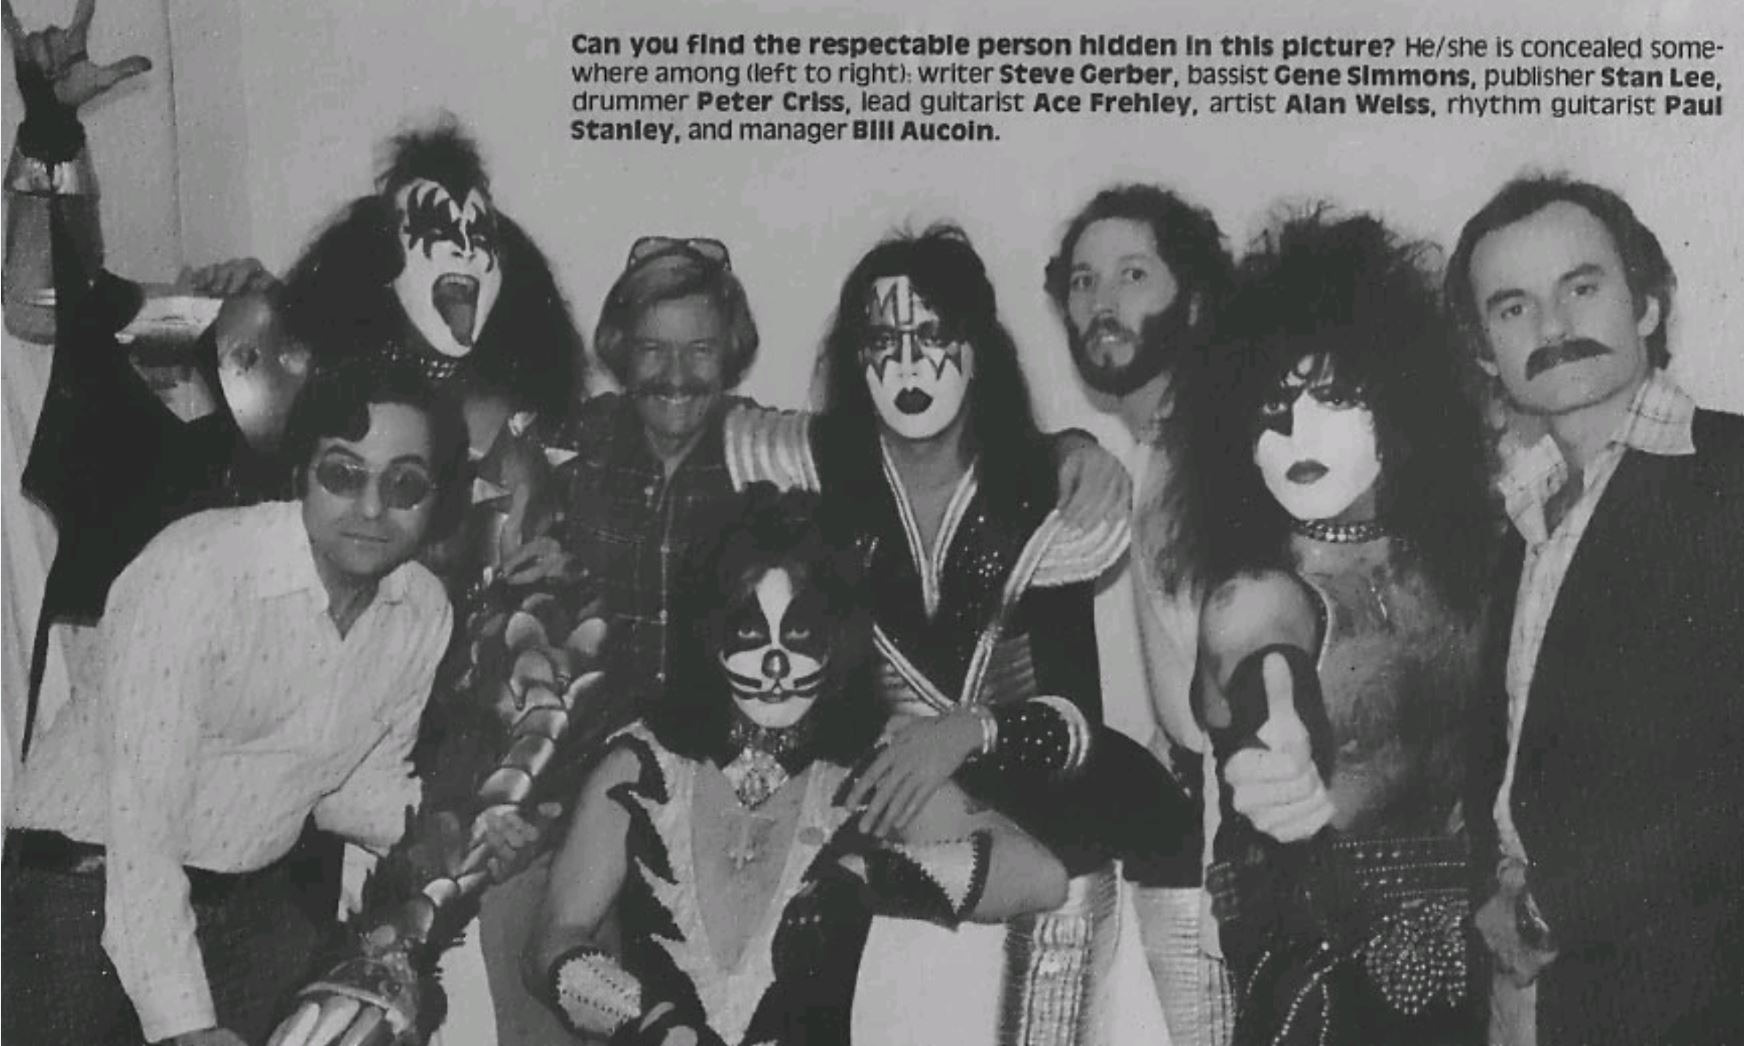 The guys from Kiss visit Marvel Comics in 1977 for the first Marvel Comics Super Special.